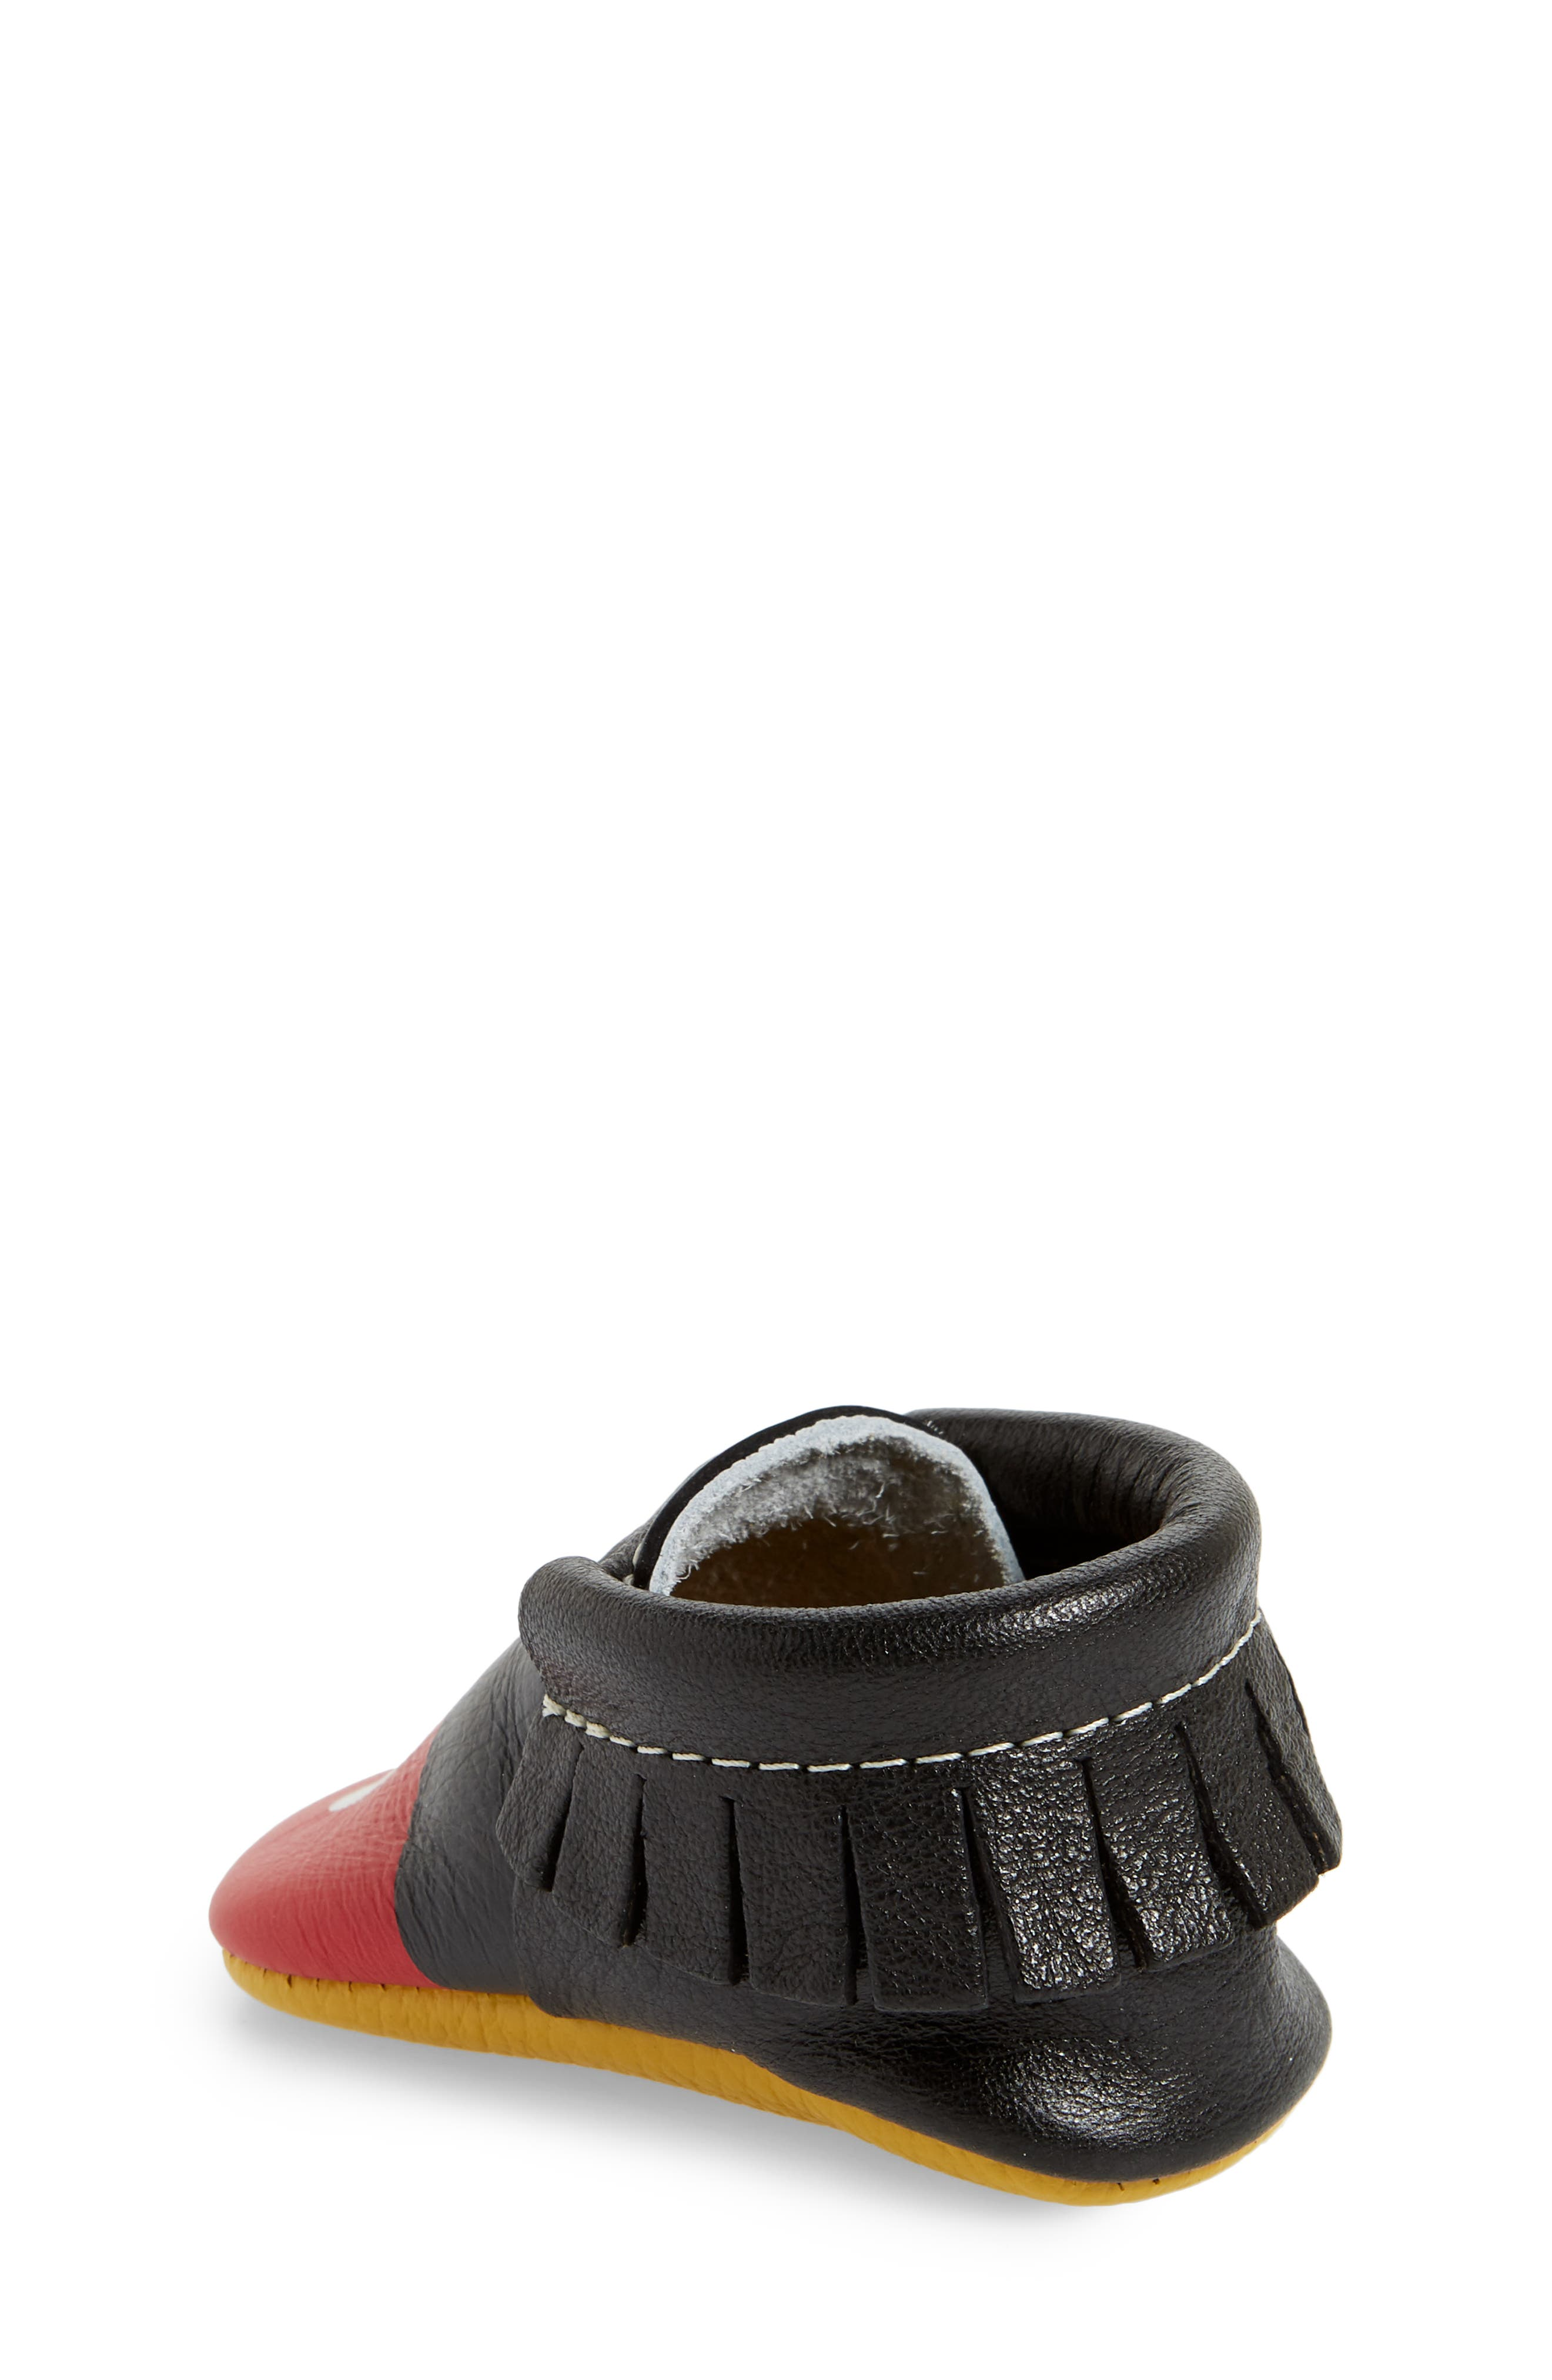 x Disney<sup>®</sup> Baby Mickey Mousee Crib Moccasin,                             Alternate thumbnail 2, color,                             001